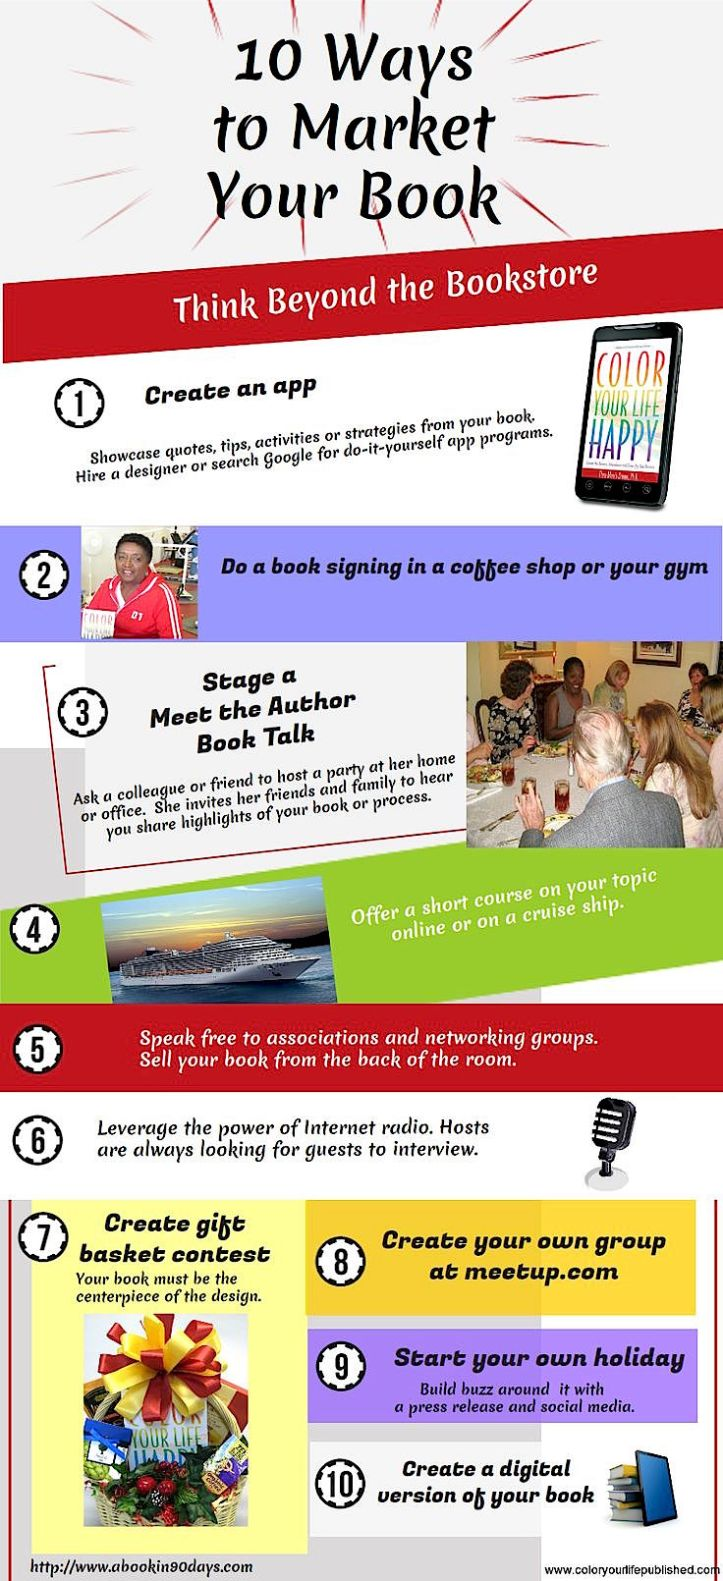 10 ways to market your book